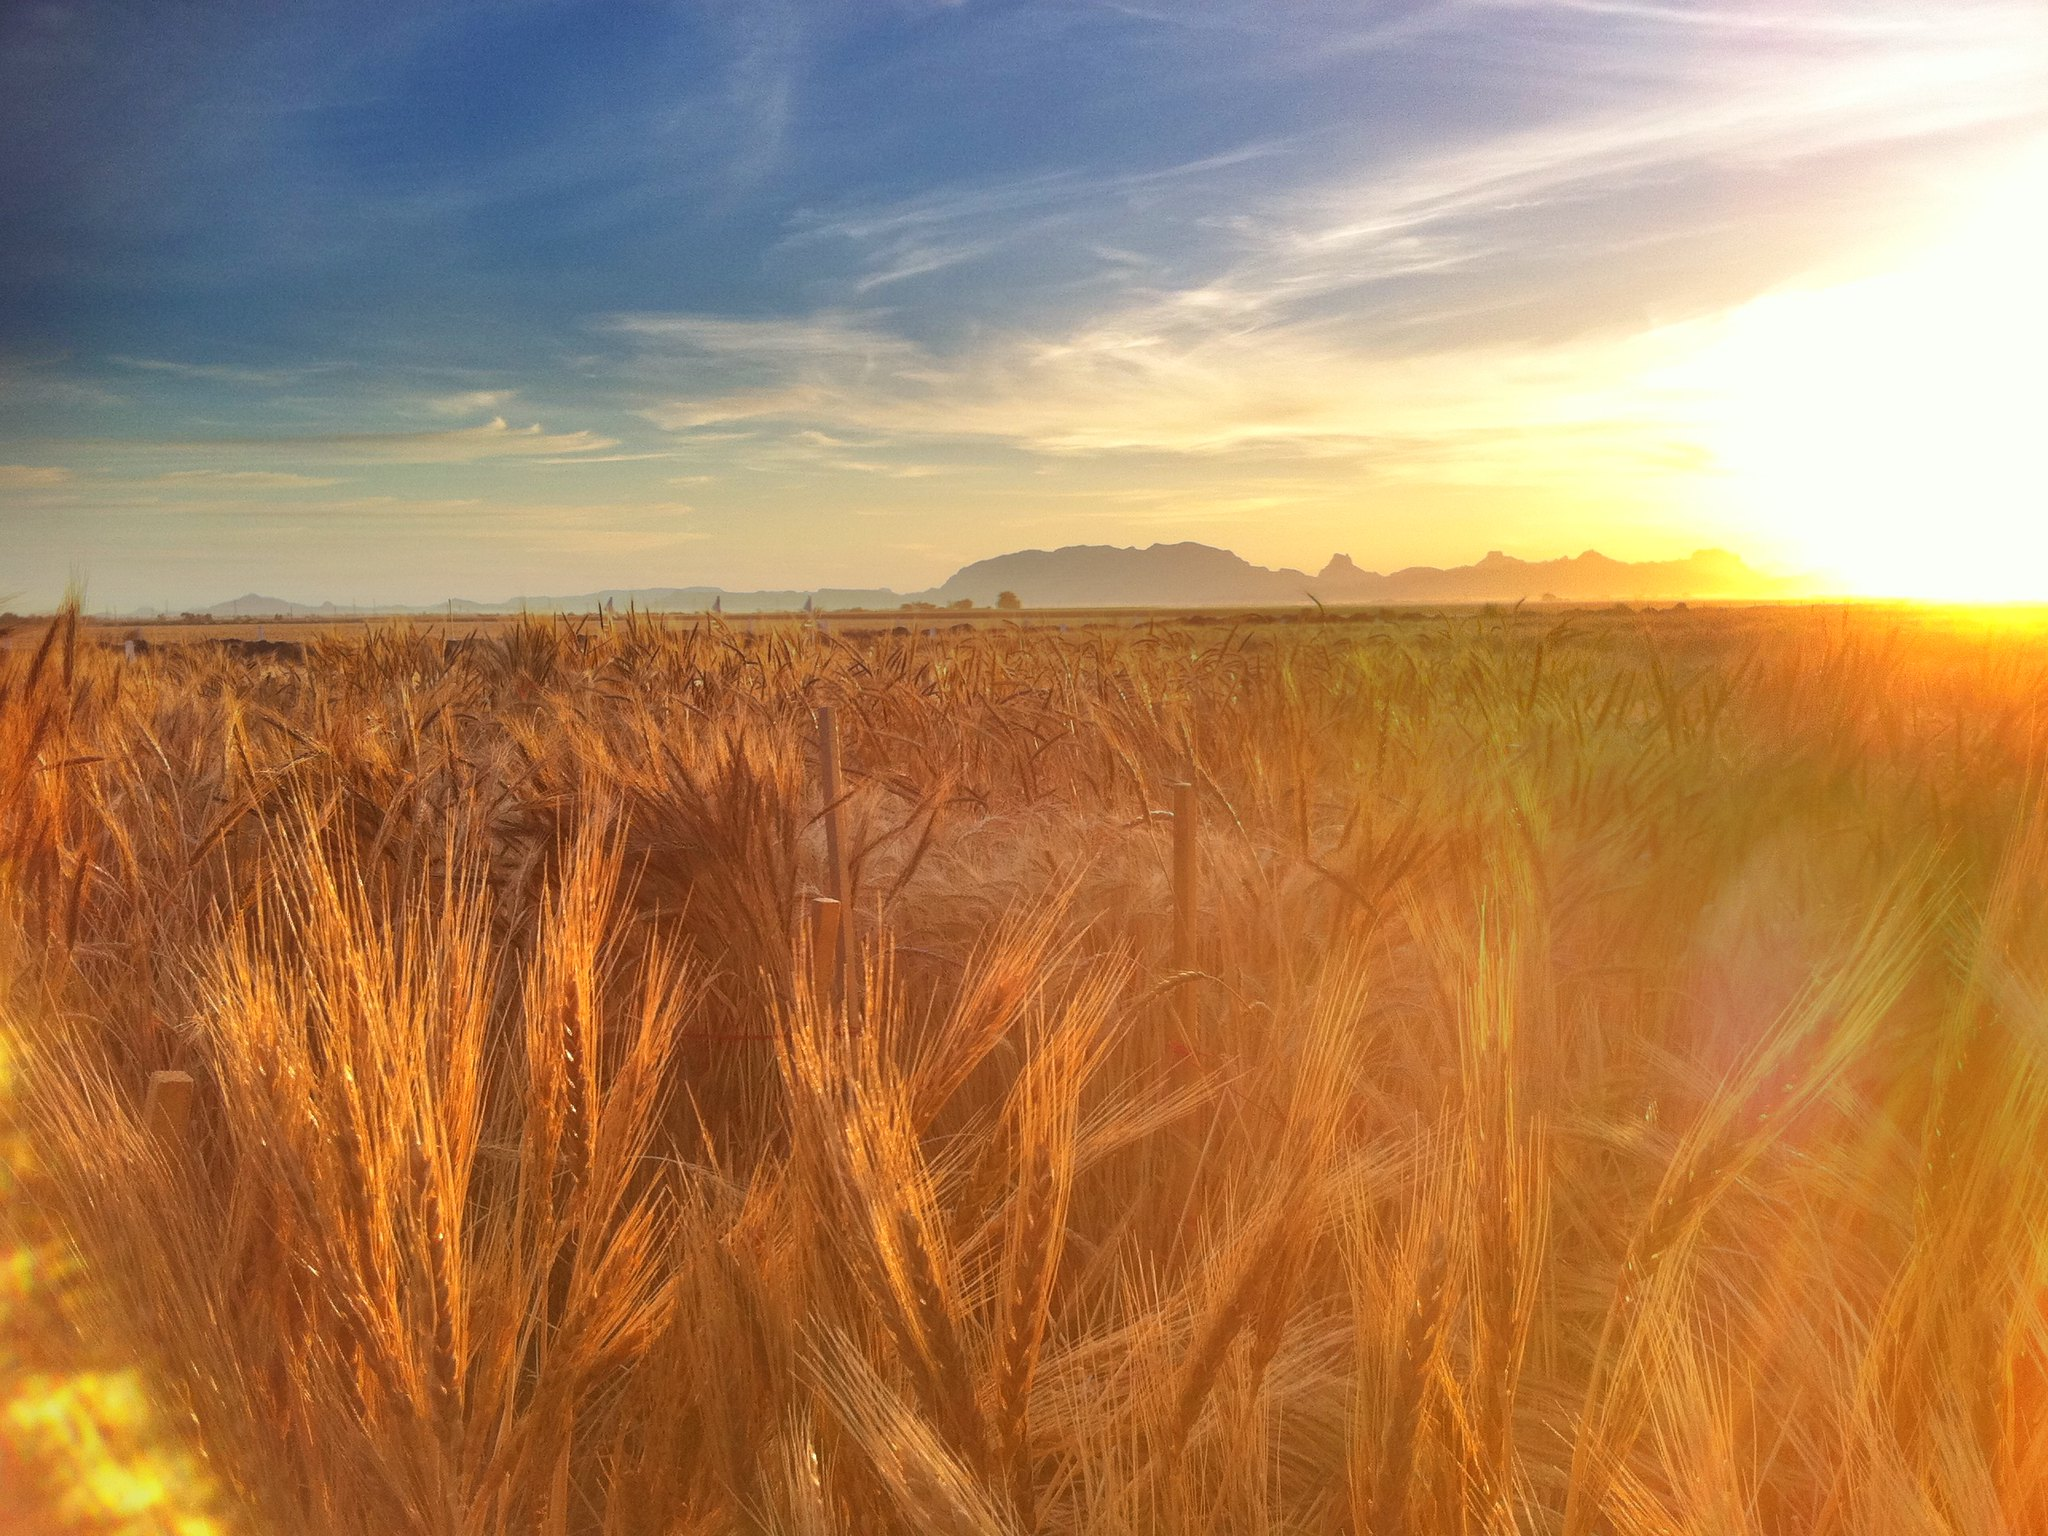 Wheat fields at the Campo Experimental Norman E. Borlaug (CENEB) near Ciudad Obregón, Sonora, Mexico. (Photo: M. Ellis/CIMMYT)